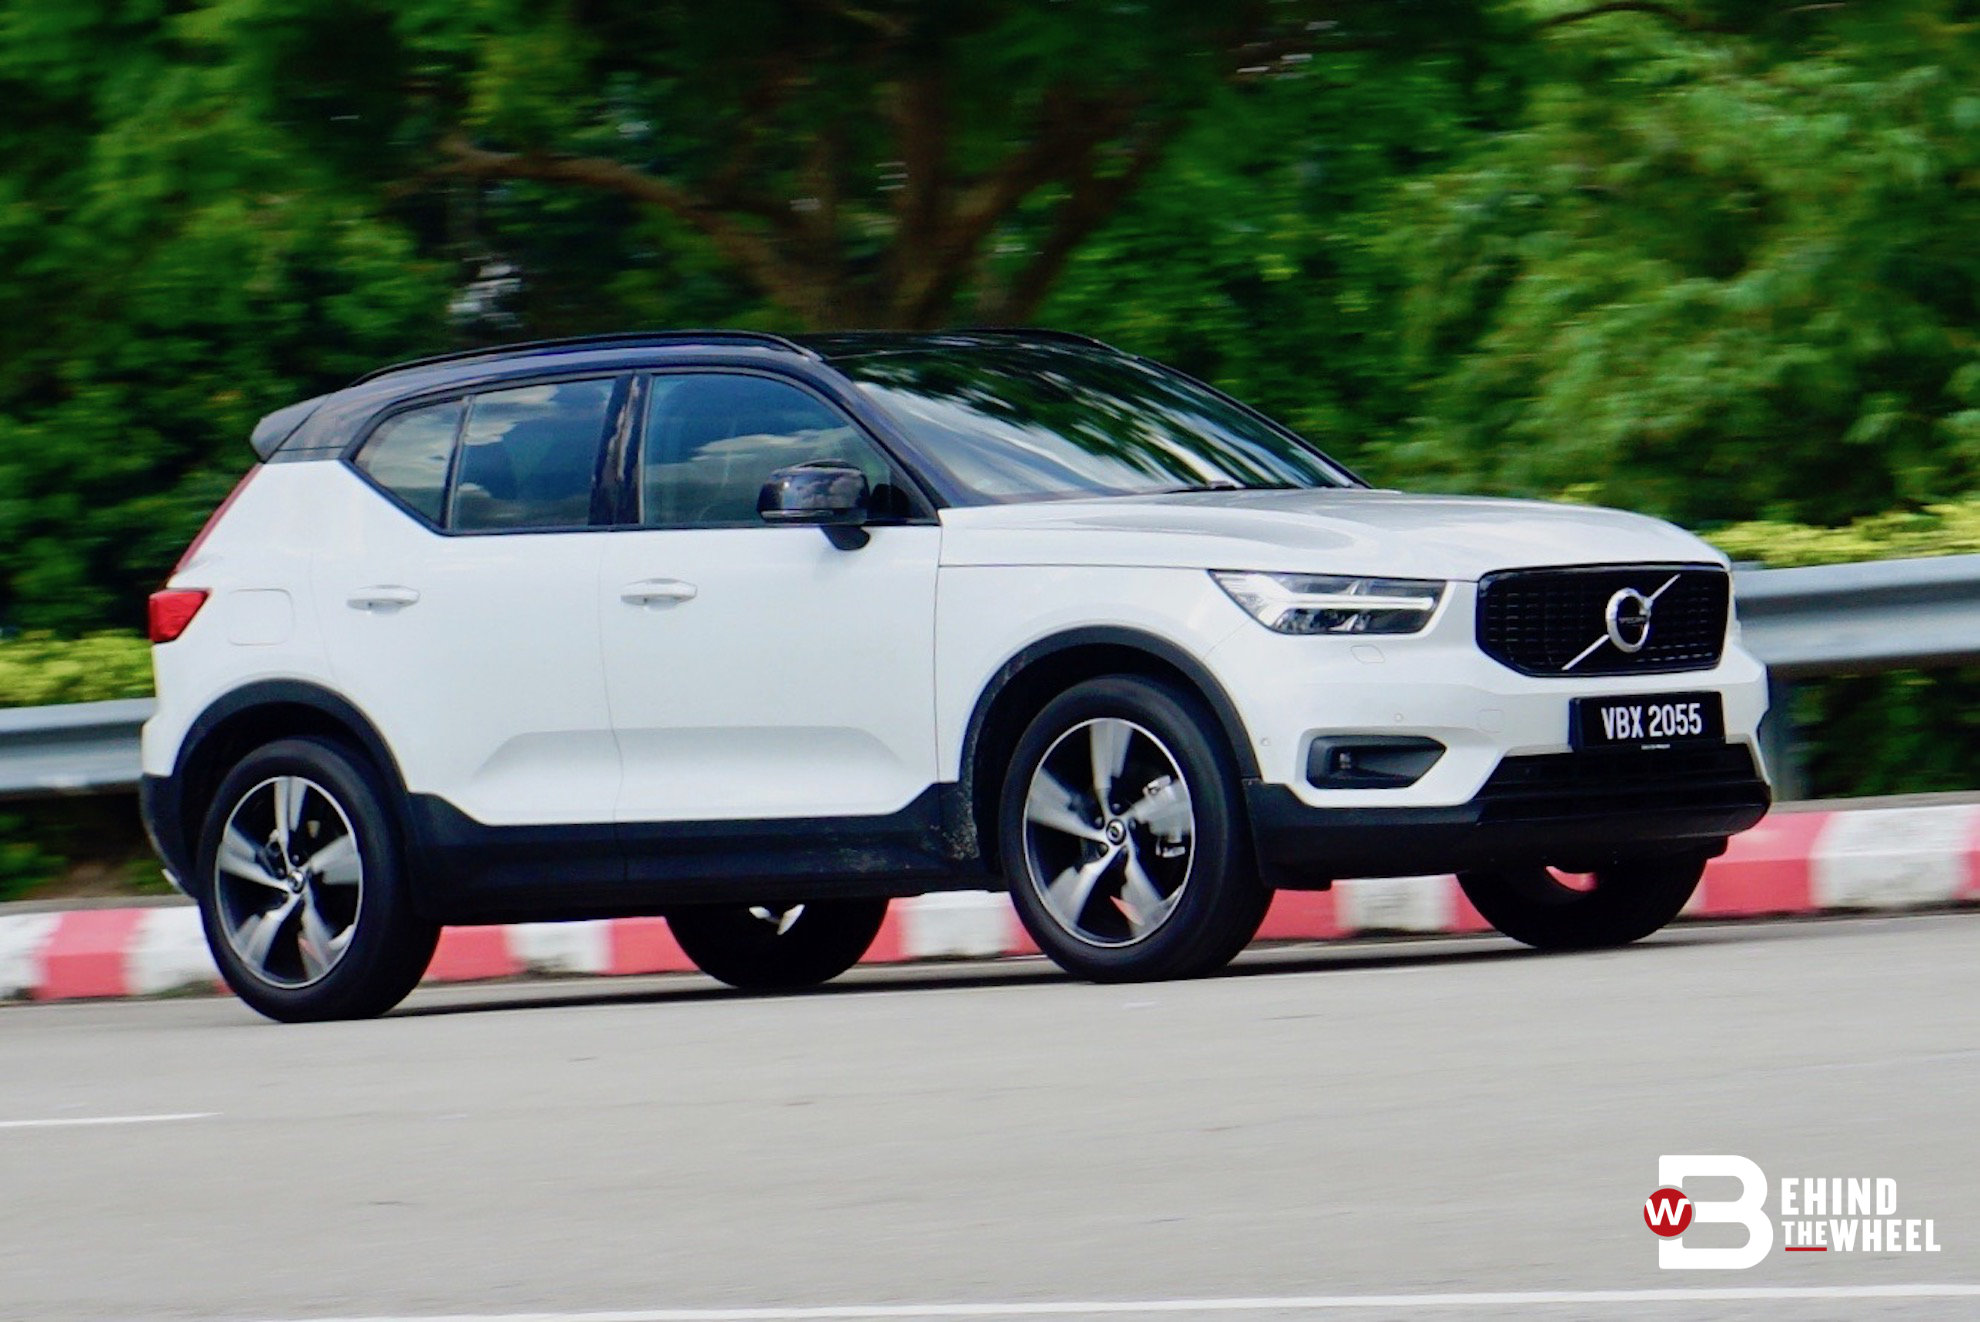 volvo xc40 t5 review sporty meets utility right in the middle the meeting is good